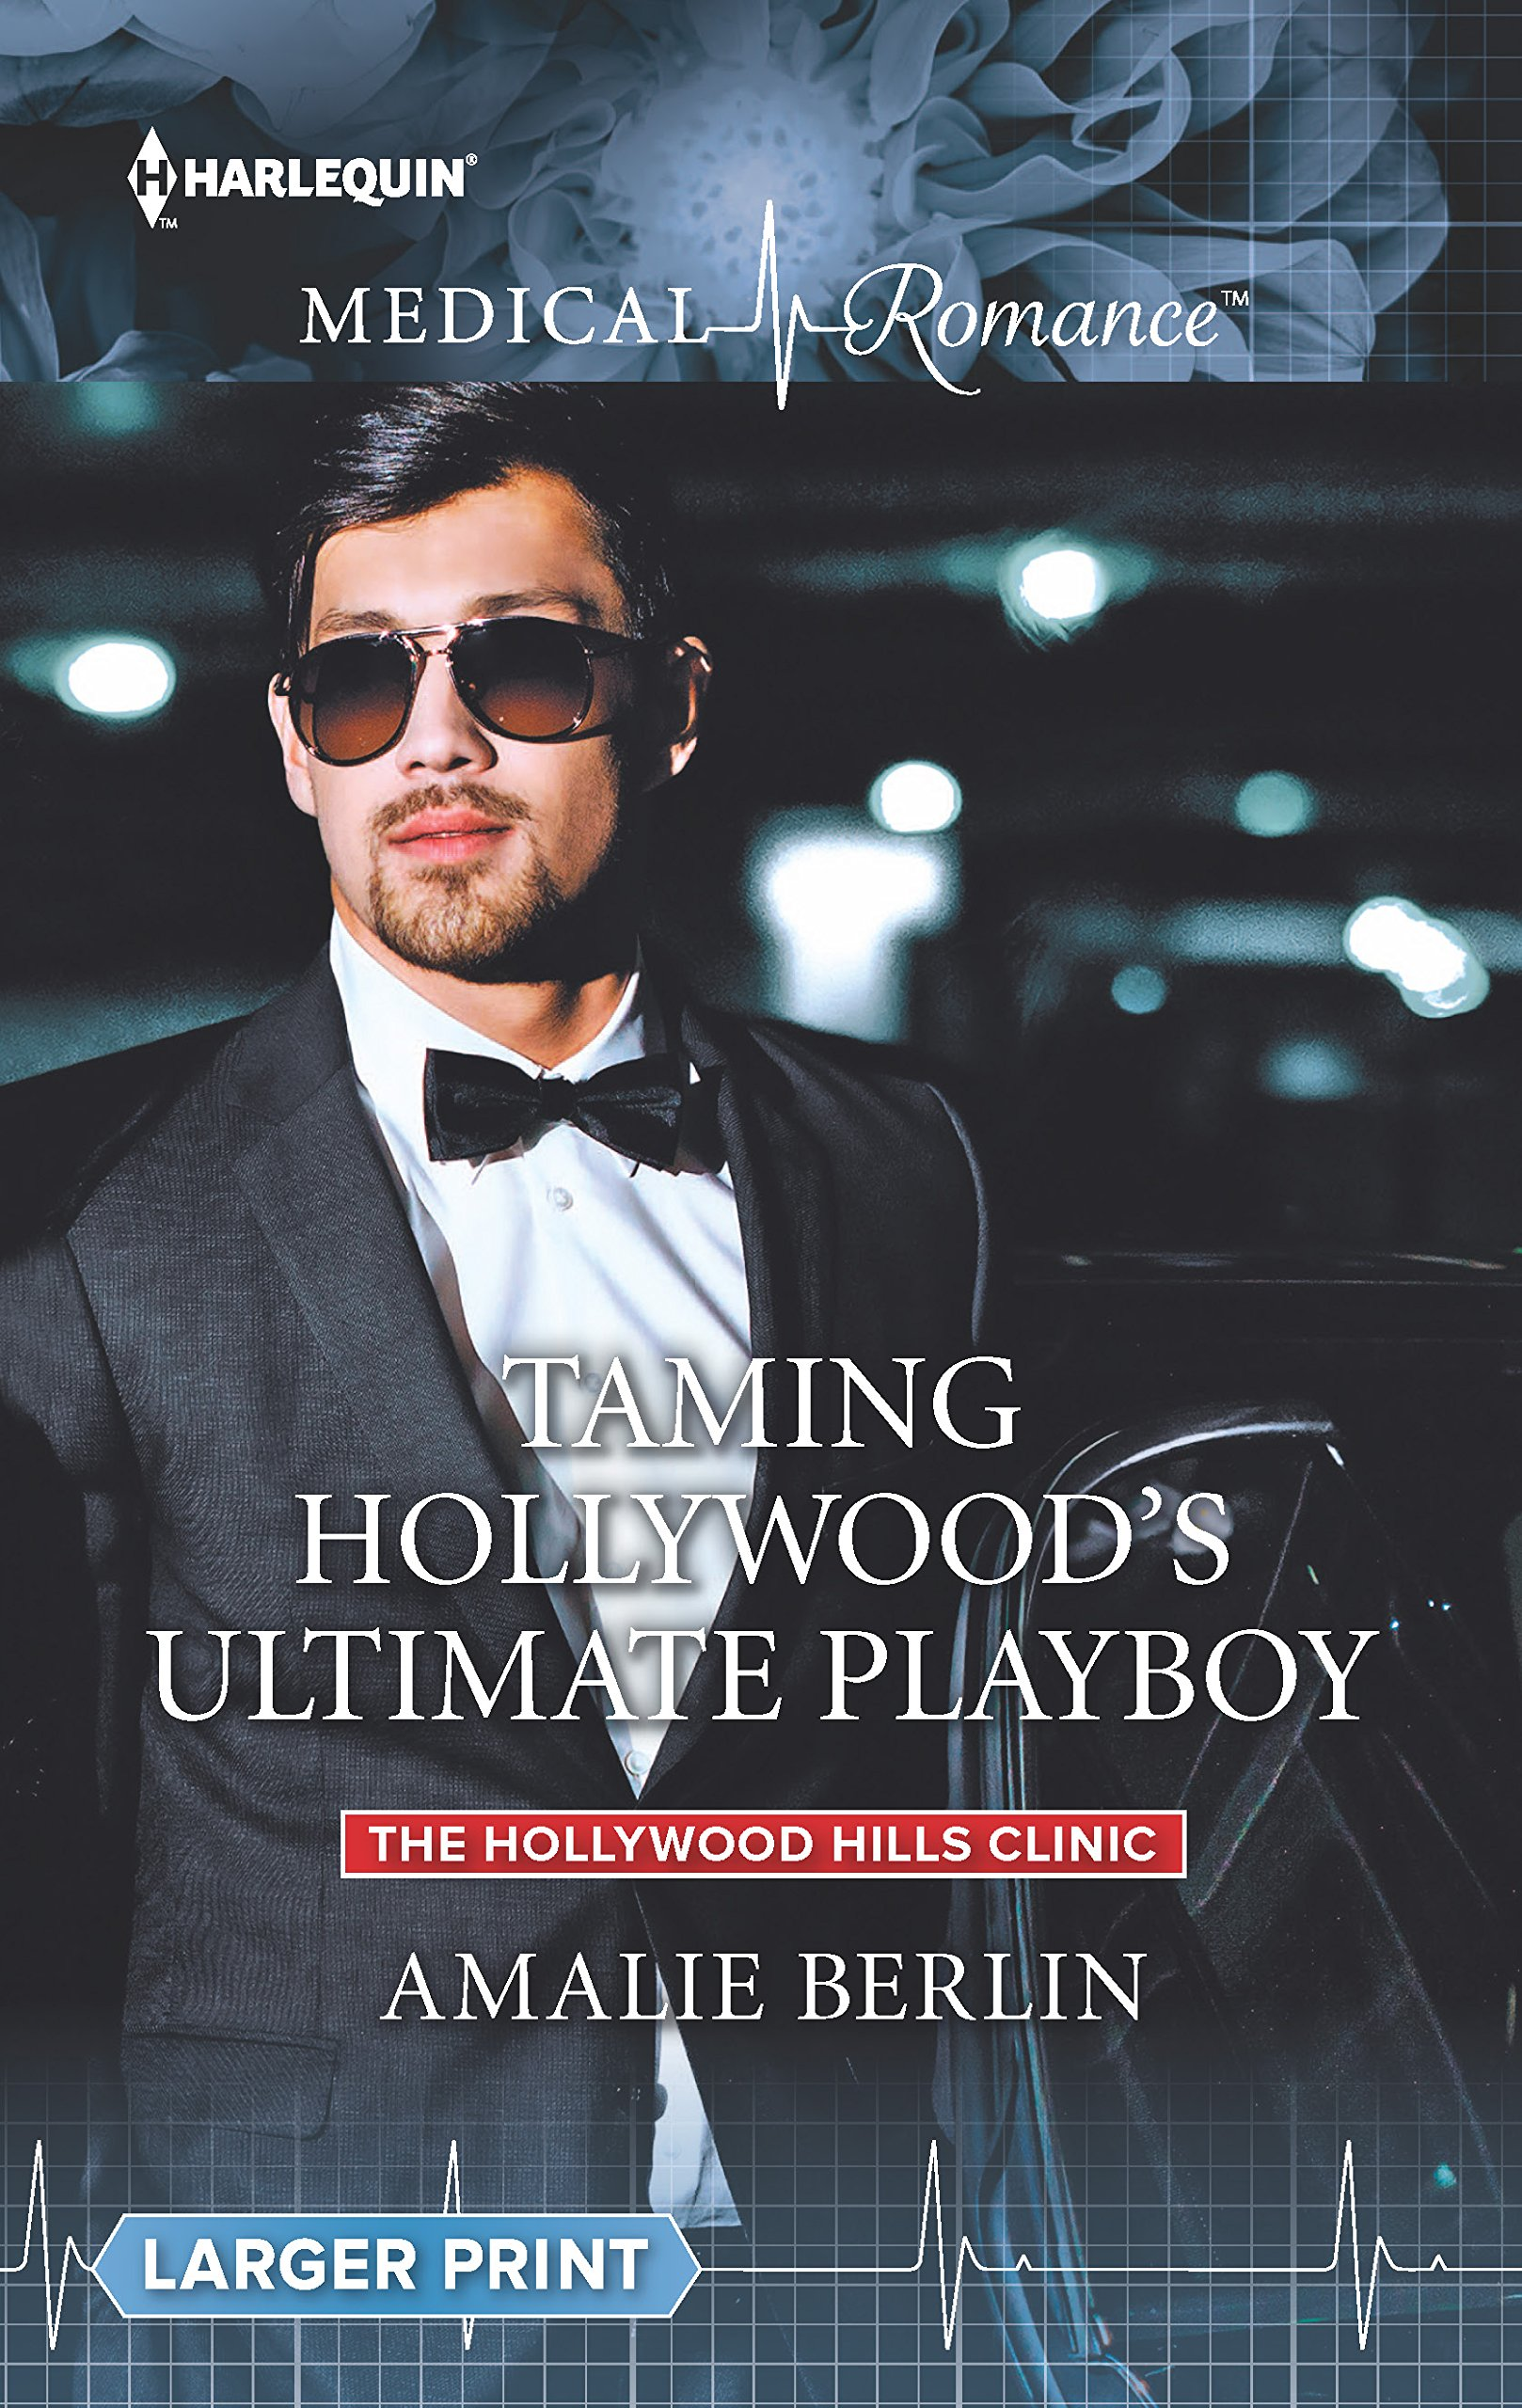 Taming Hollywoods Ultimate Playboy Hollywood product image